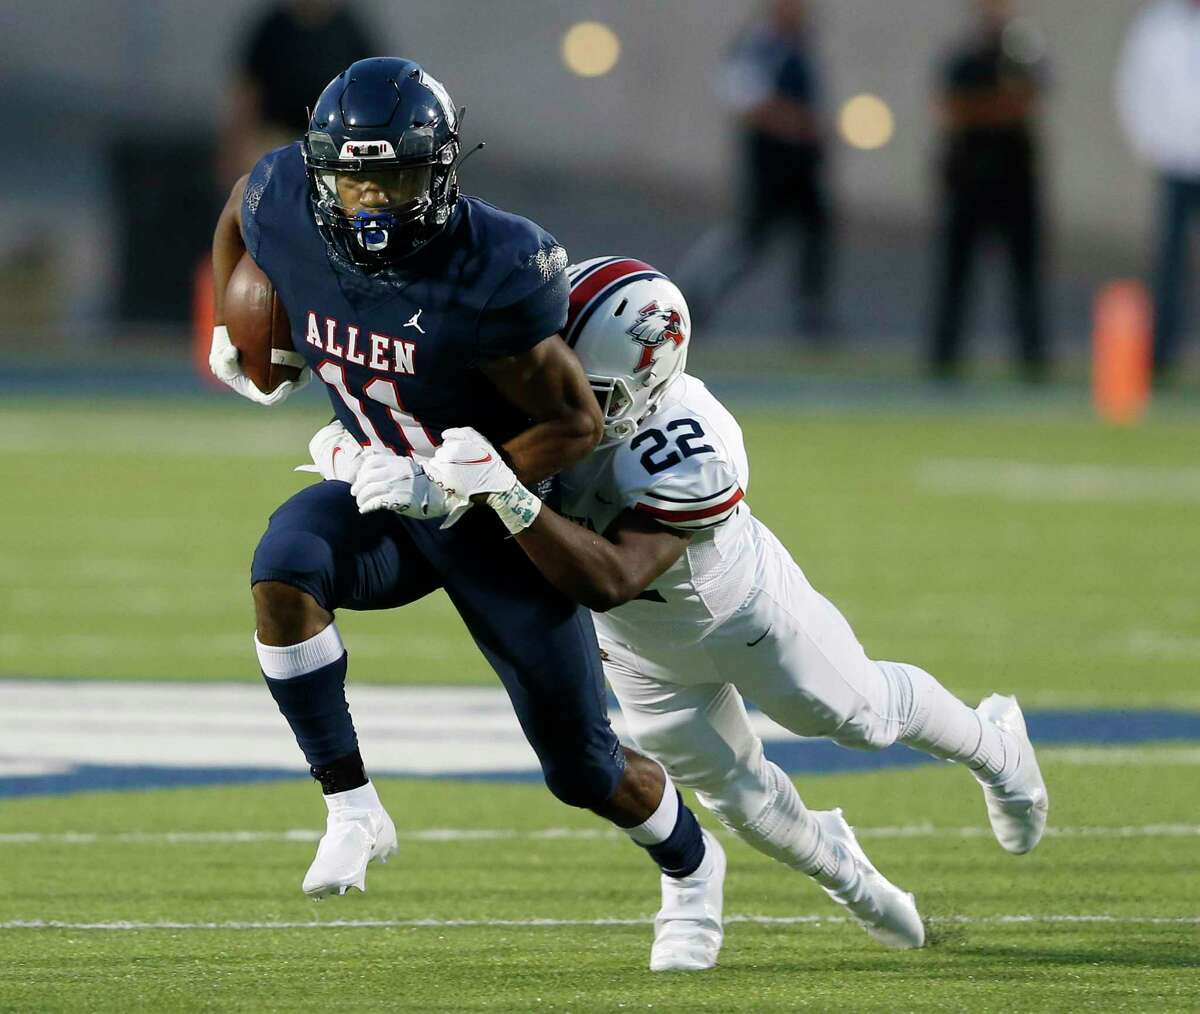 Allen's Jordan Johnson (11) is brought down by Humble Atascocita's Davon Bacon (22) during a run play in the first quarter of play at Eagle Stadium in Allen, Texas on Friday, October 2, 2020. (Vernon Bryant/The Dallas Morning News)